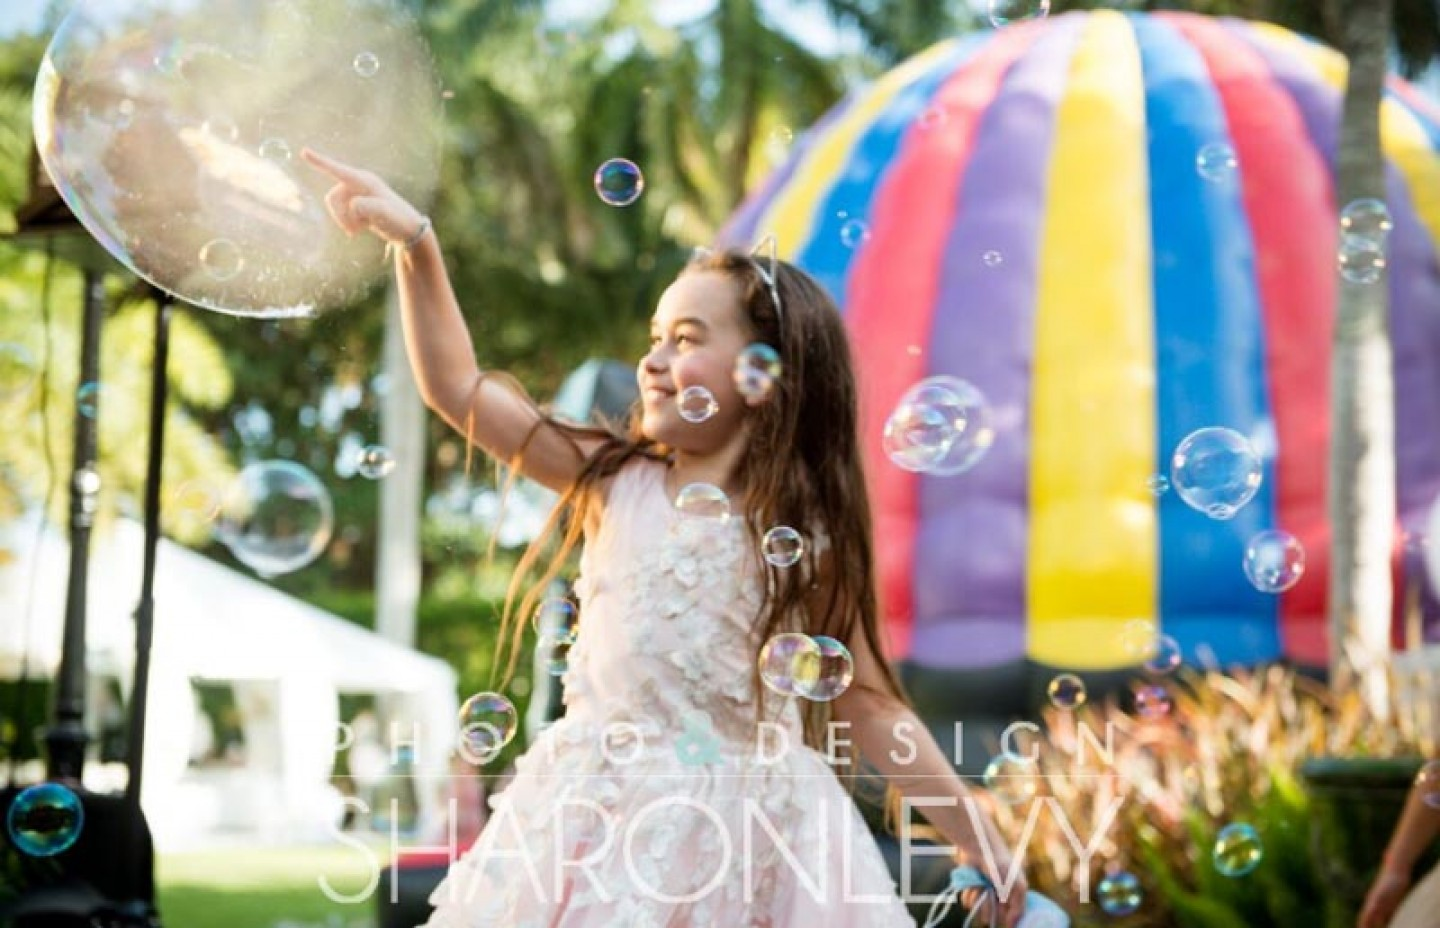 Bubble Show for kids party, kids birthday, school, summer camp